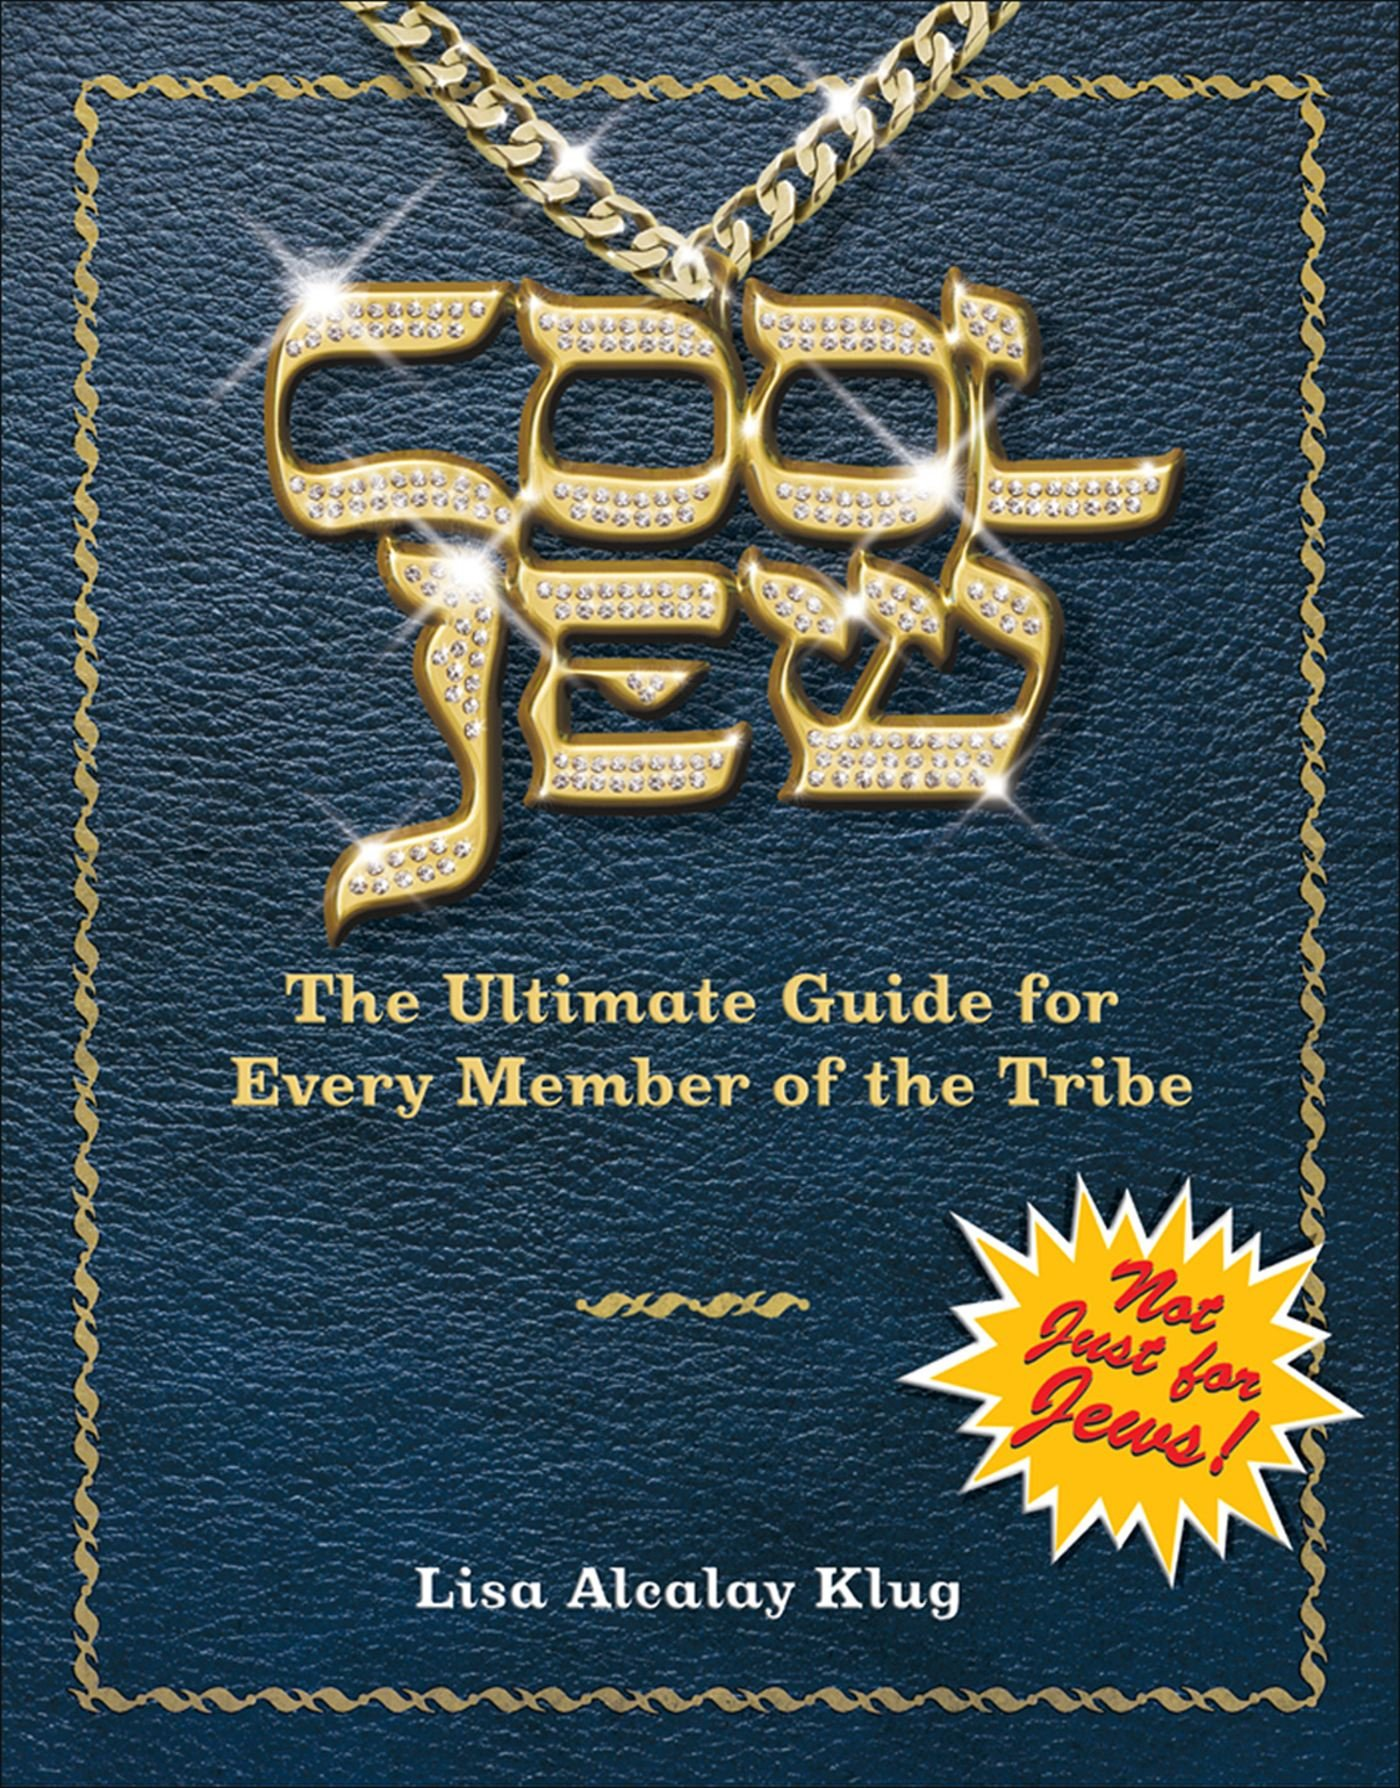 cool jew the ultimate guide for every member of the tribe lisa alcalay klug 0050837252103 amazoncom books